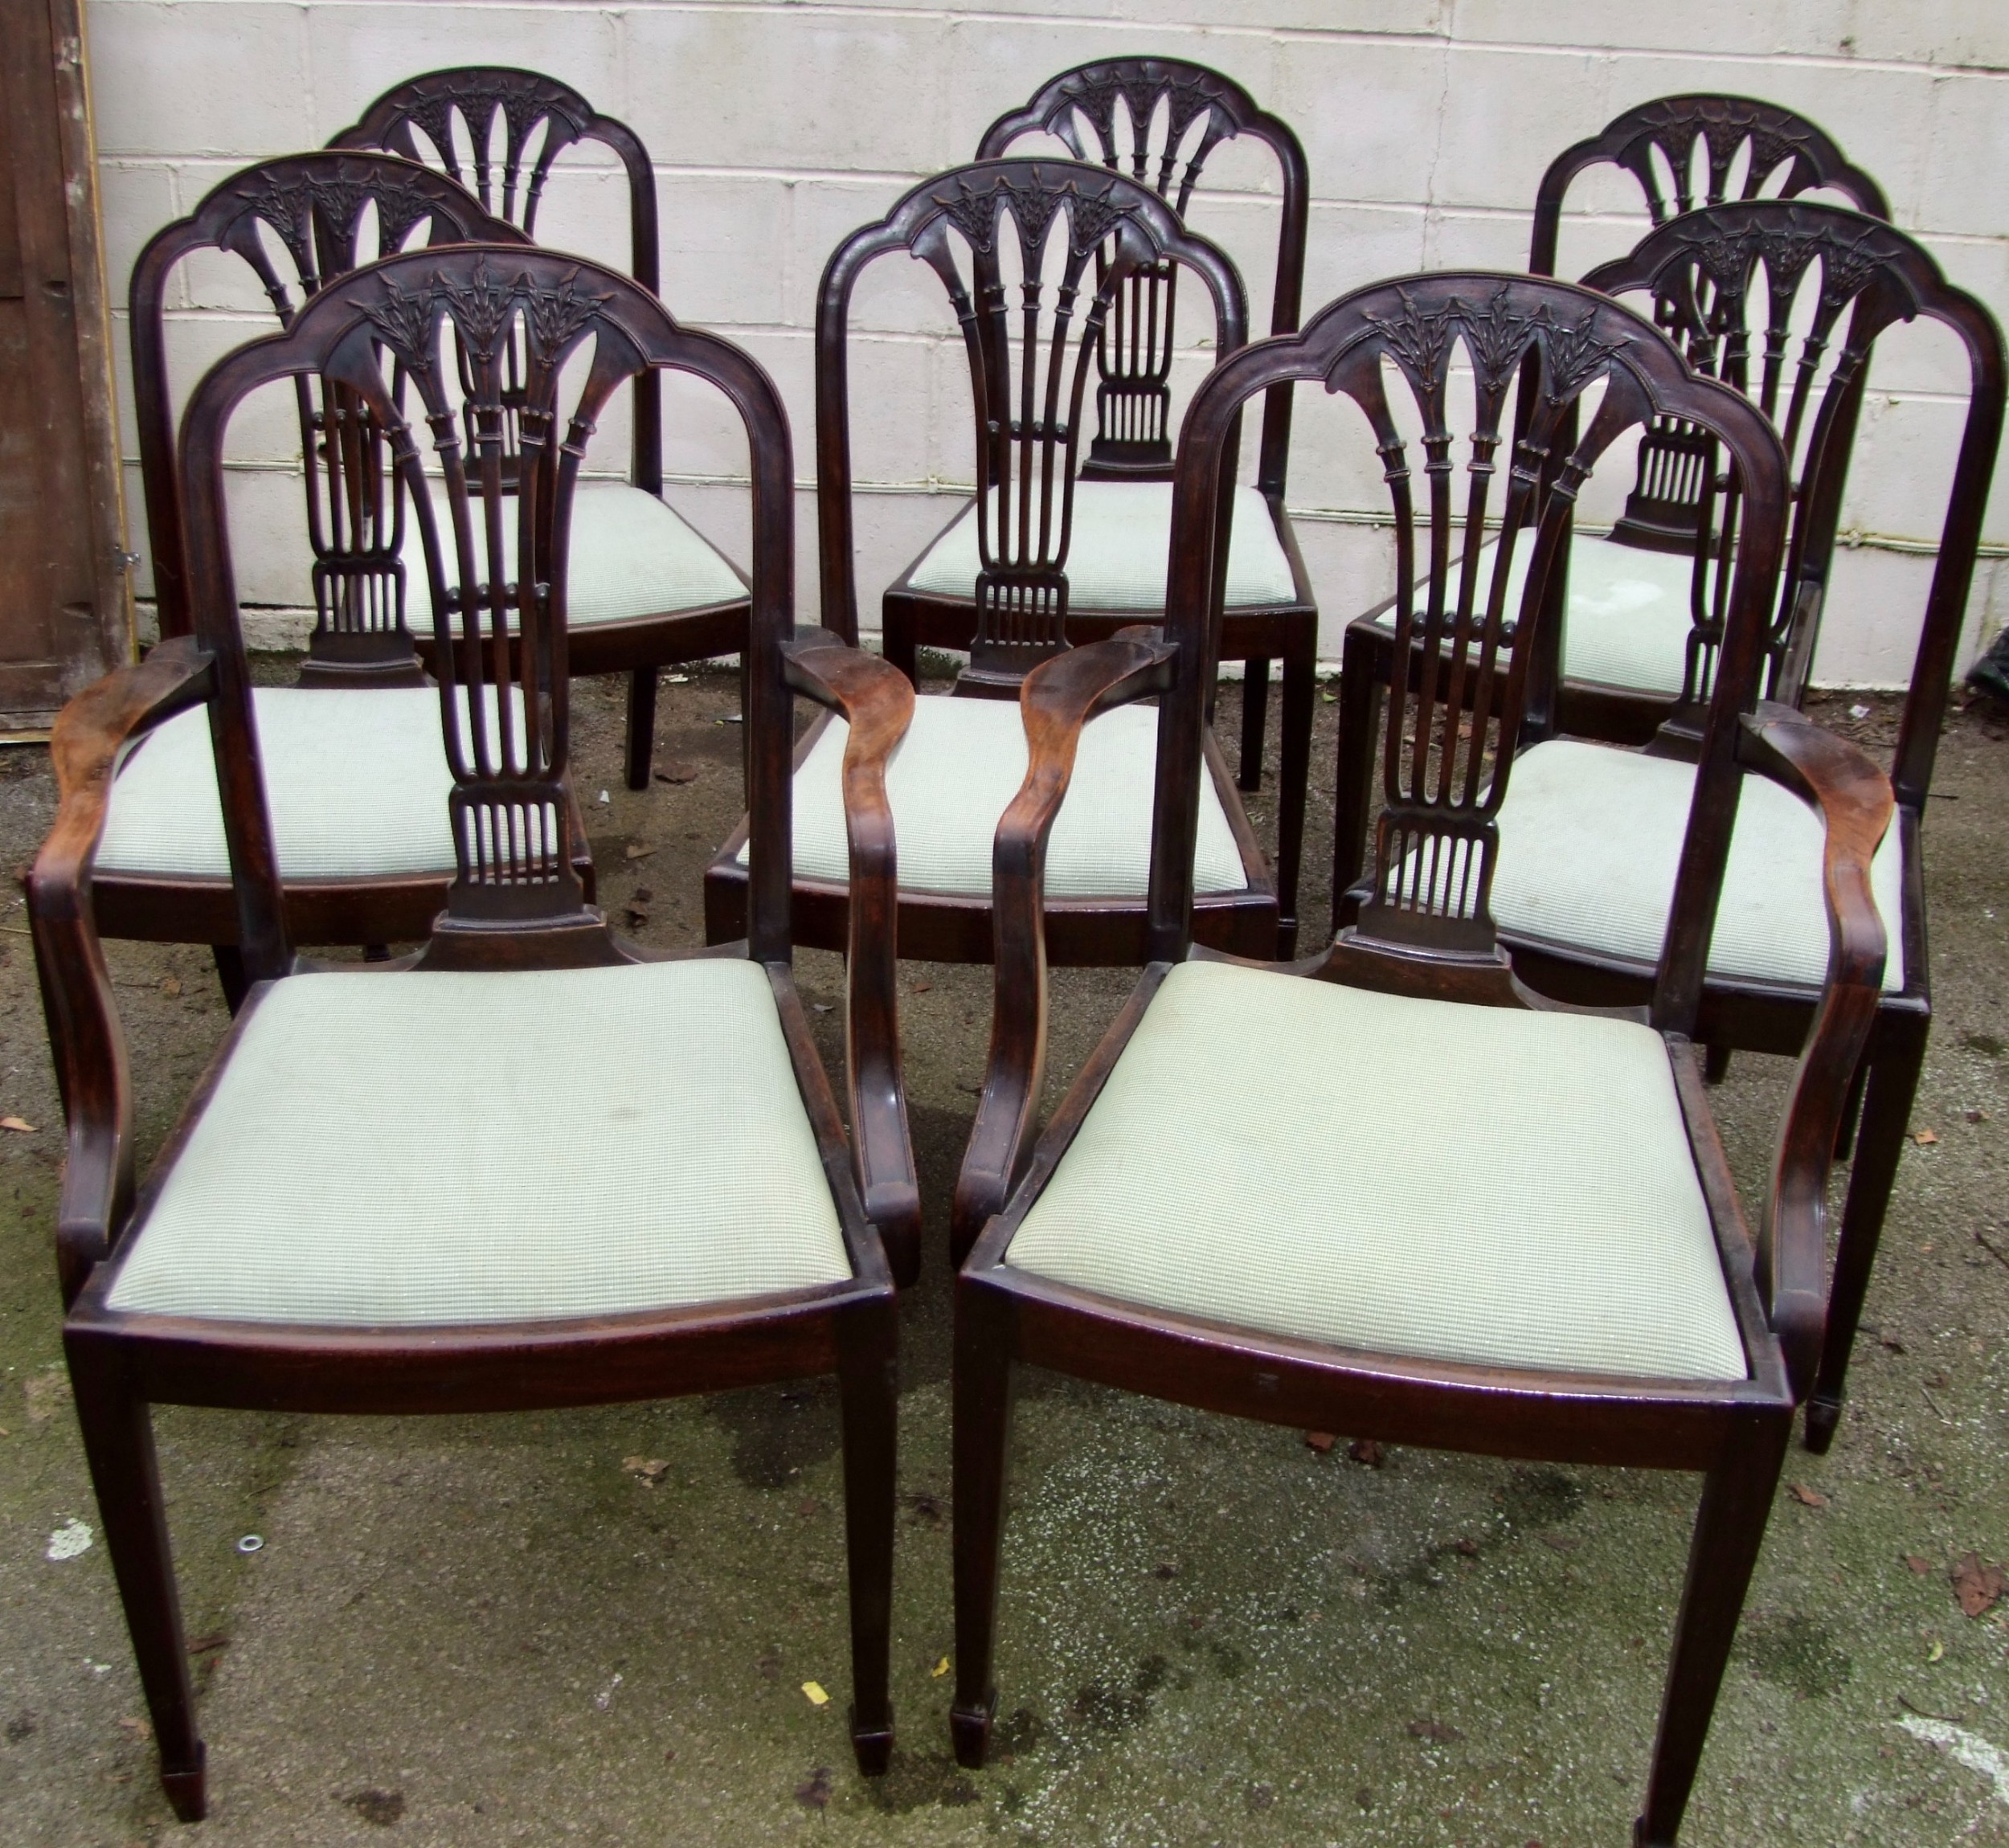 set of eight 19th century dining chairs by s h jewell of london two carvers and six singles in the hepplewhite style